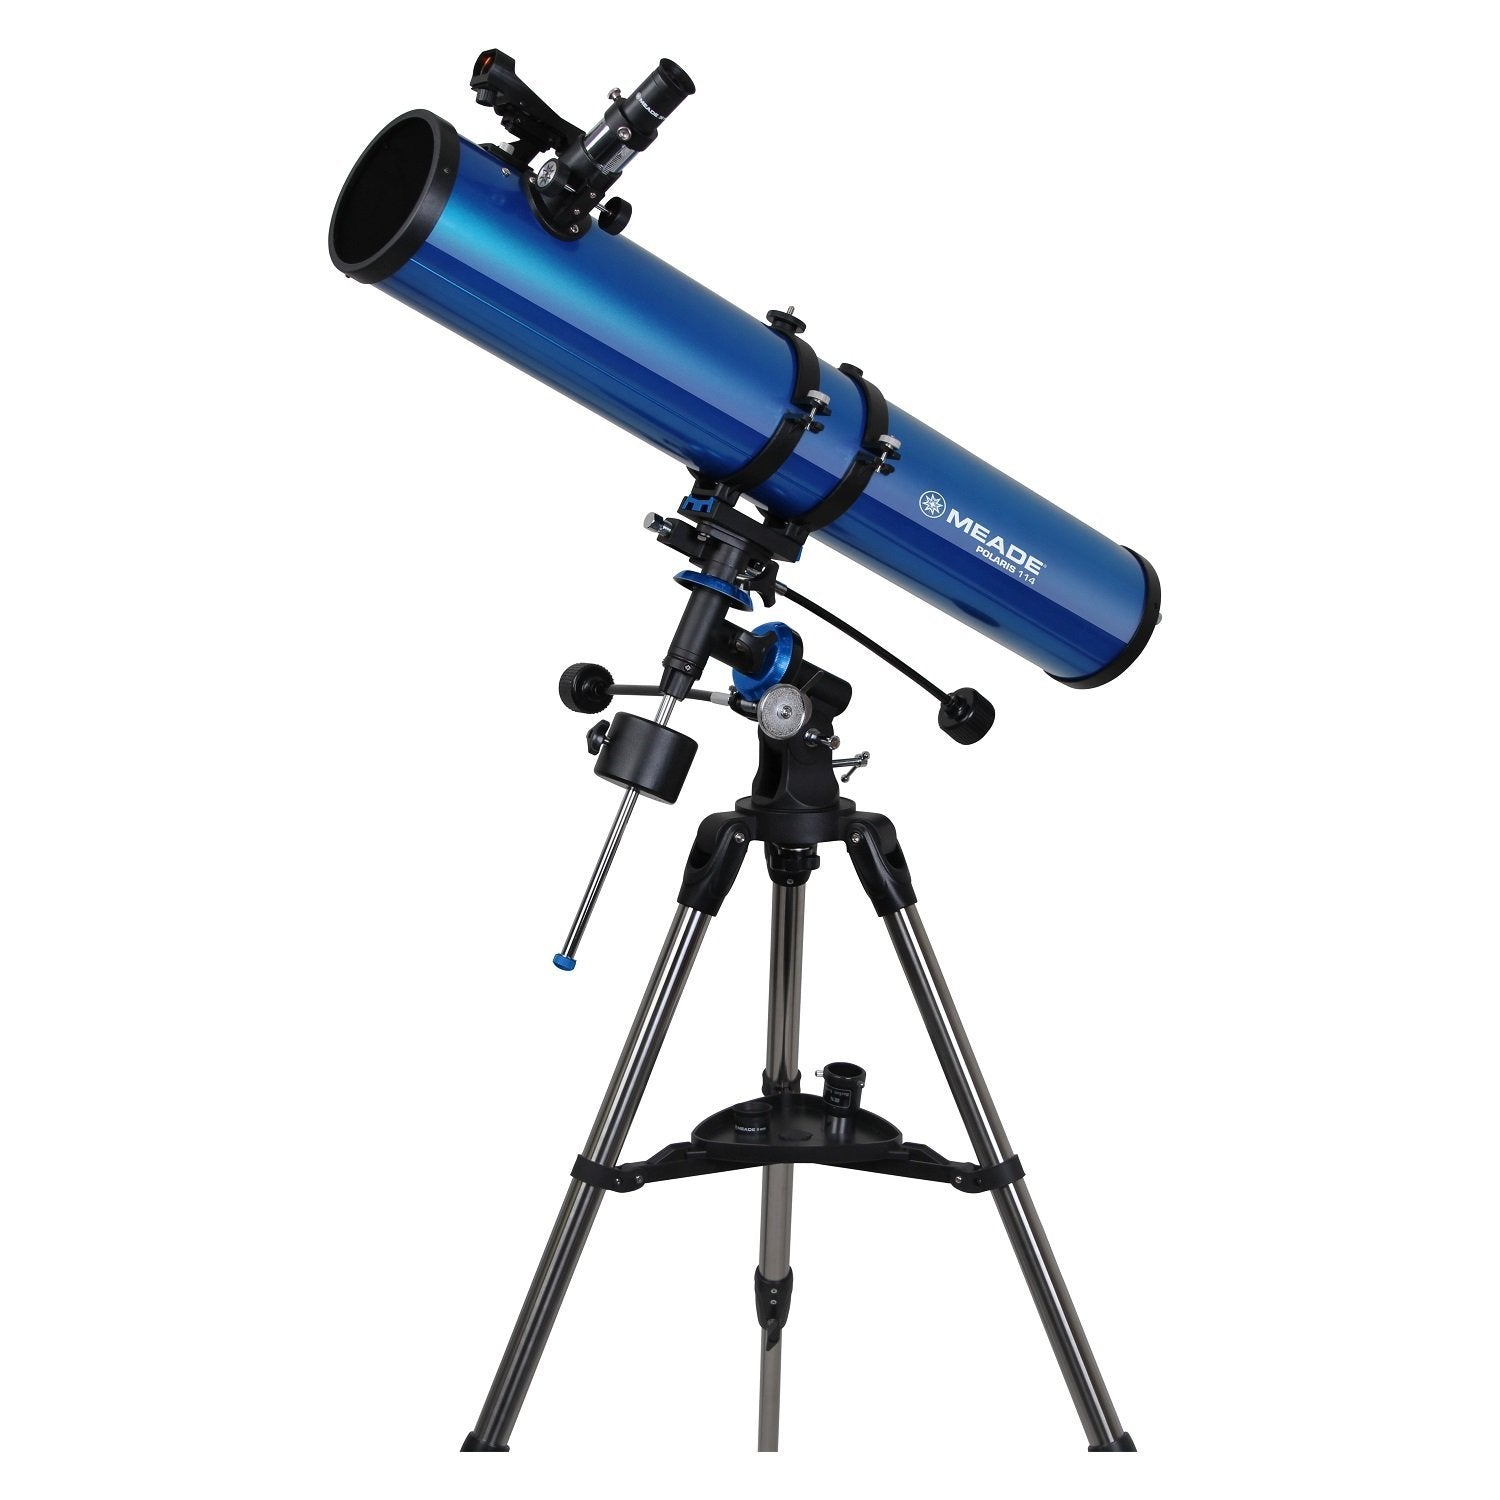 Telescope Meade Polaris 114mm German Equatorial Reflector Telescope